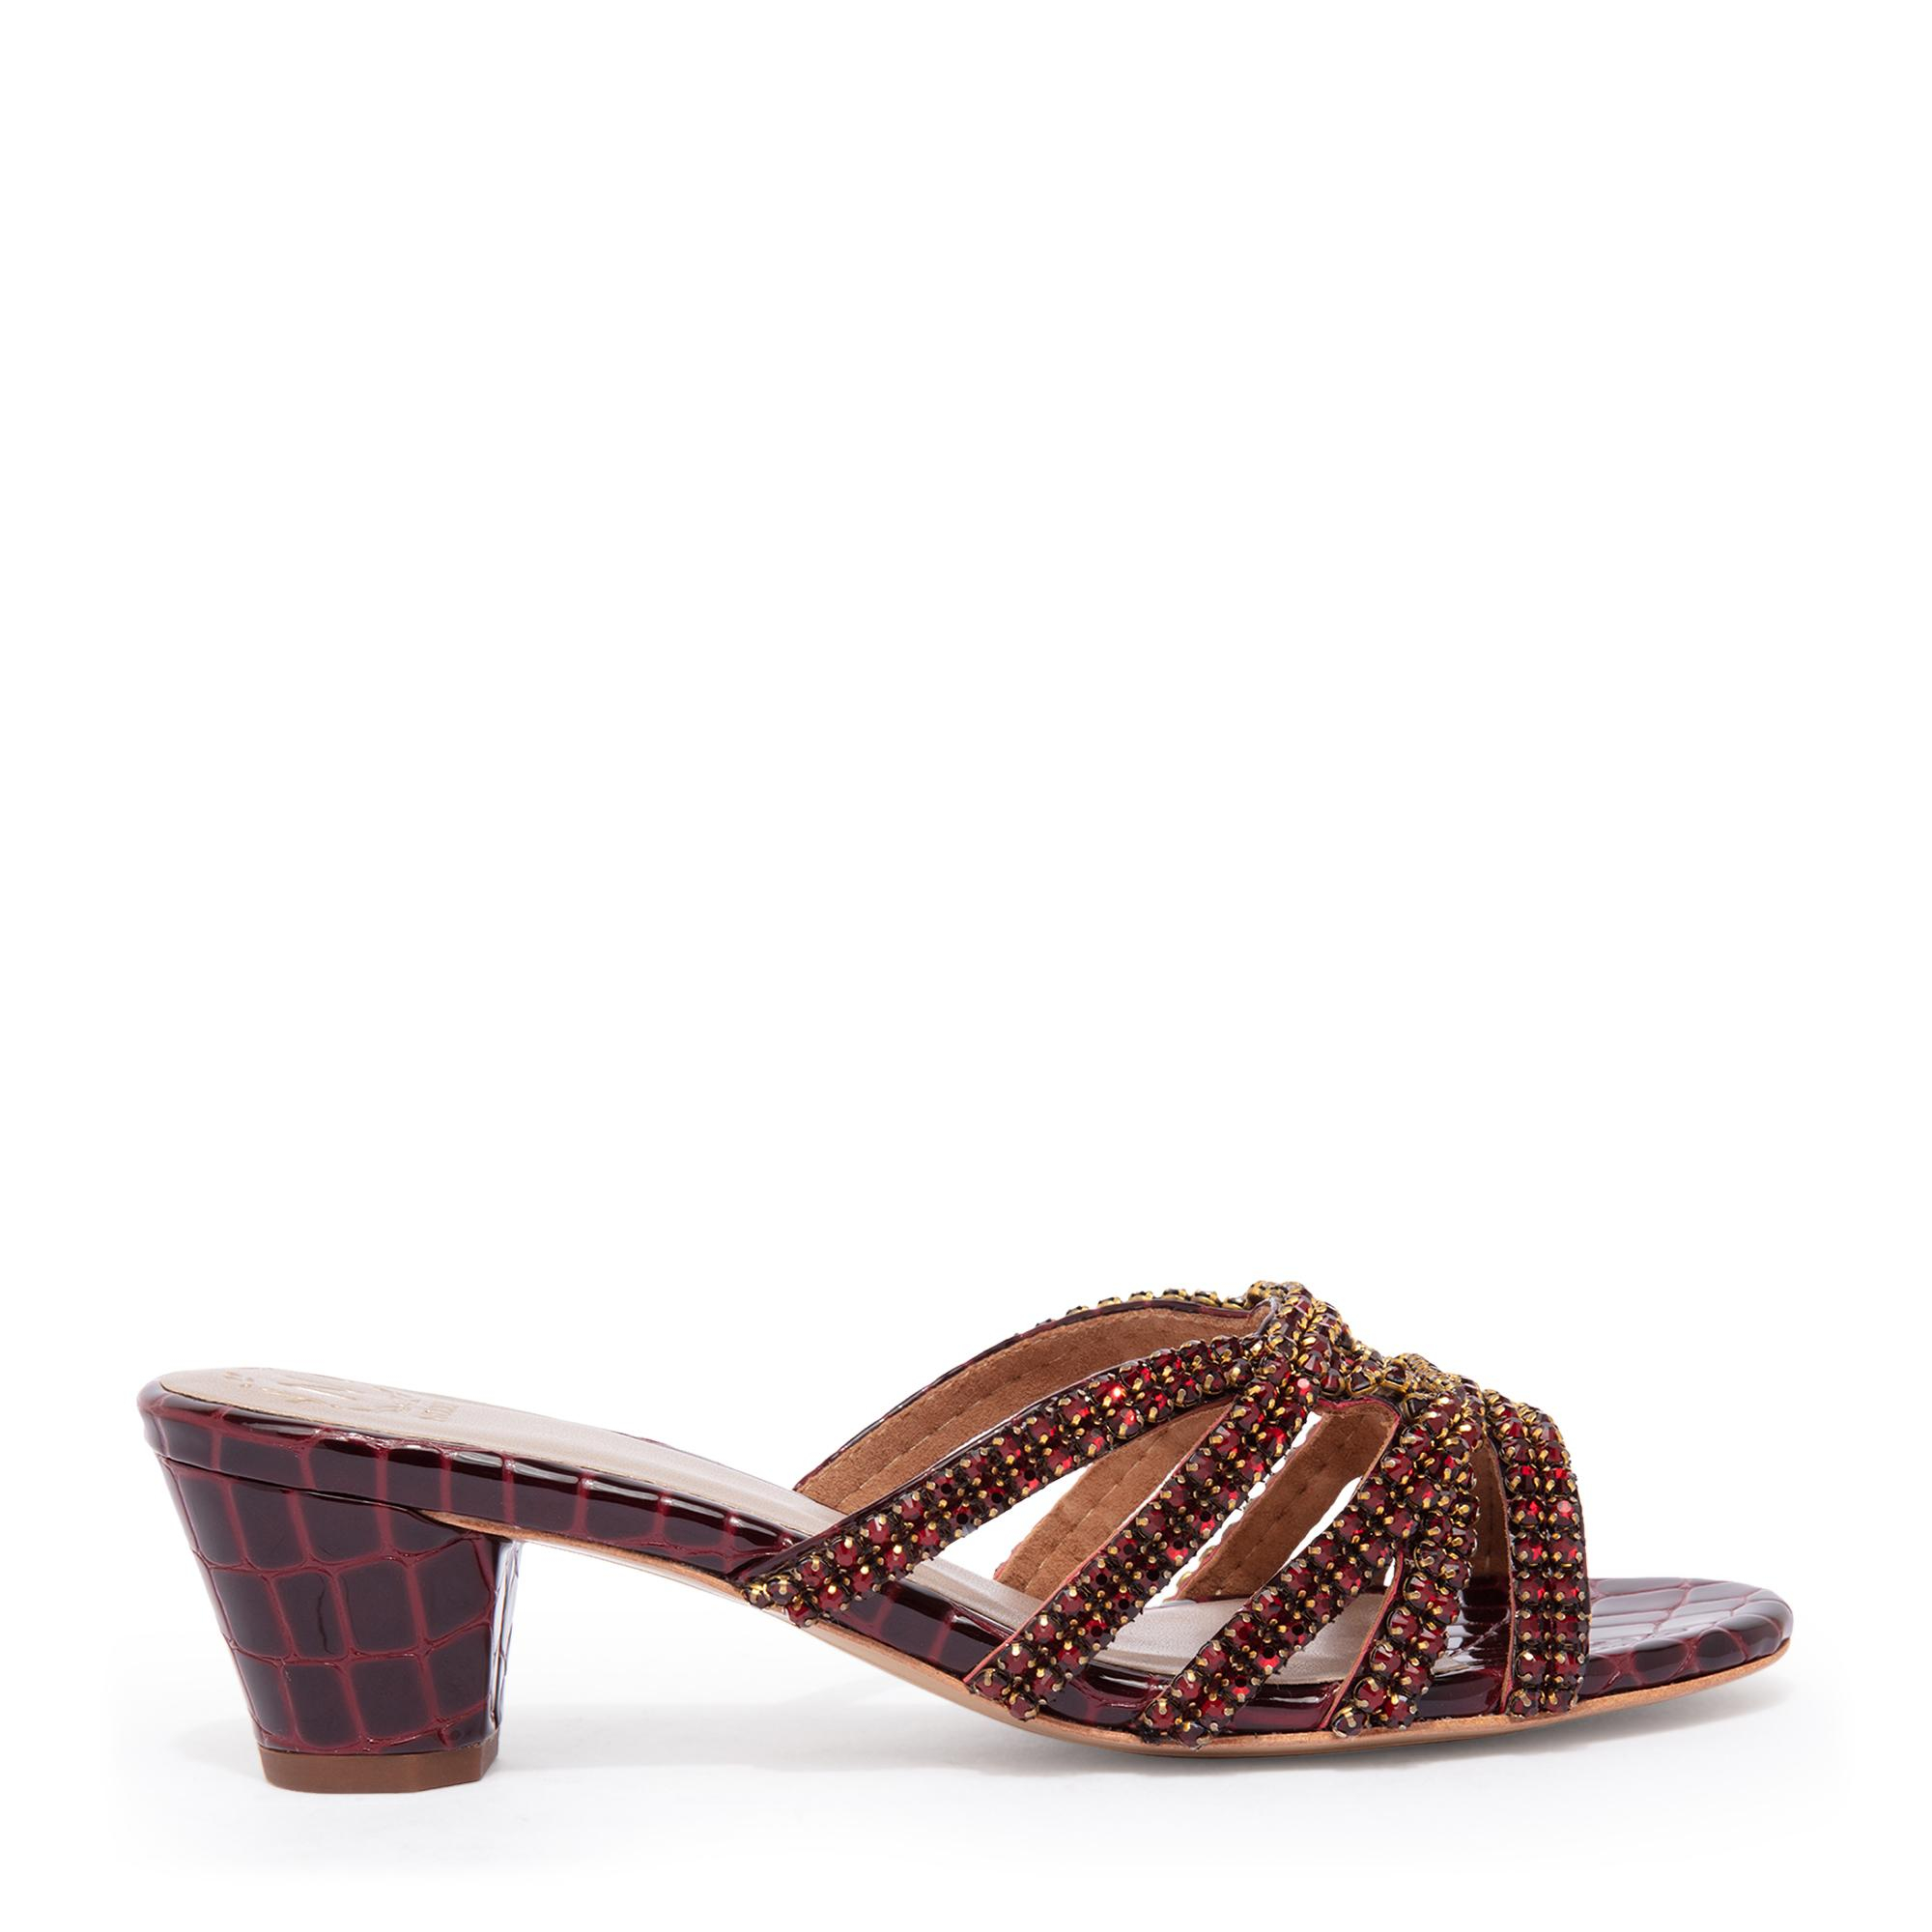 Coty sandals